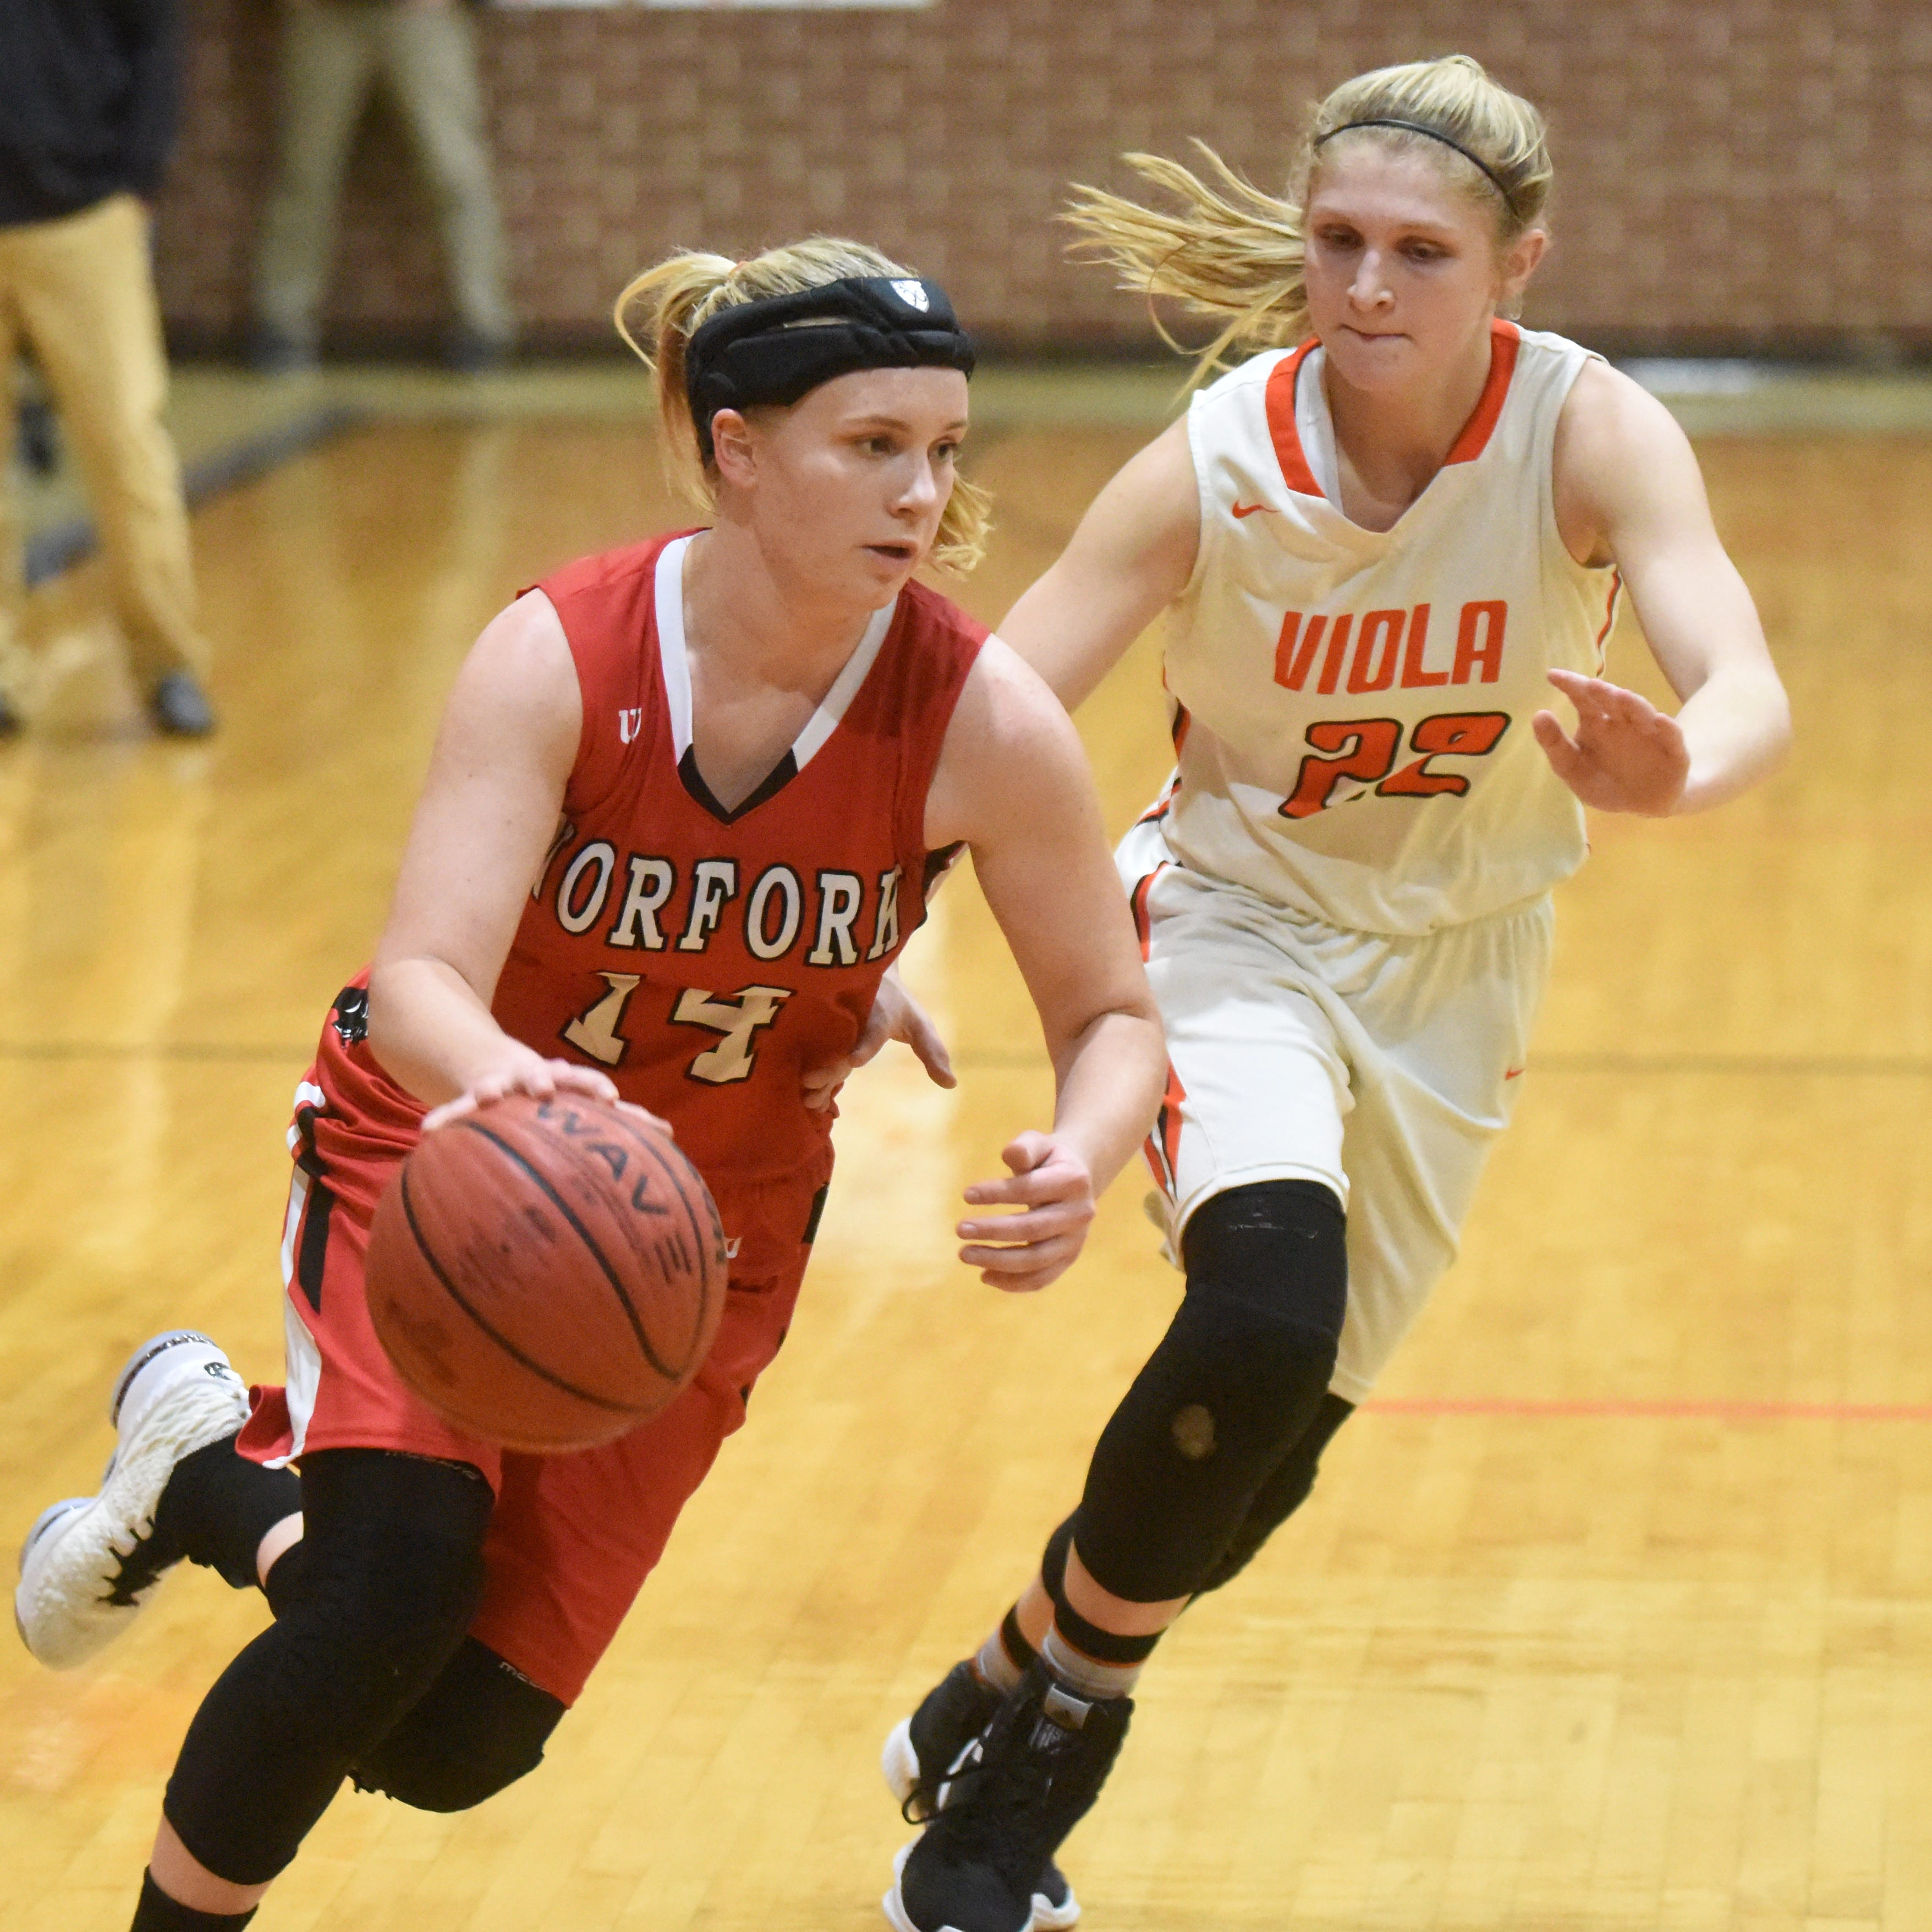 Norfork clips Viola with strong start to each half